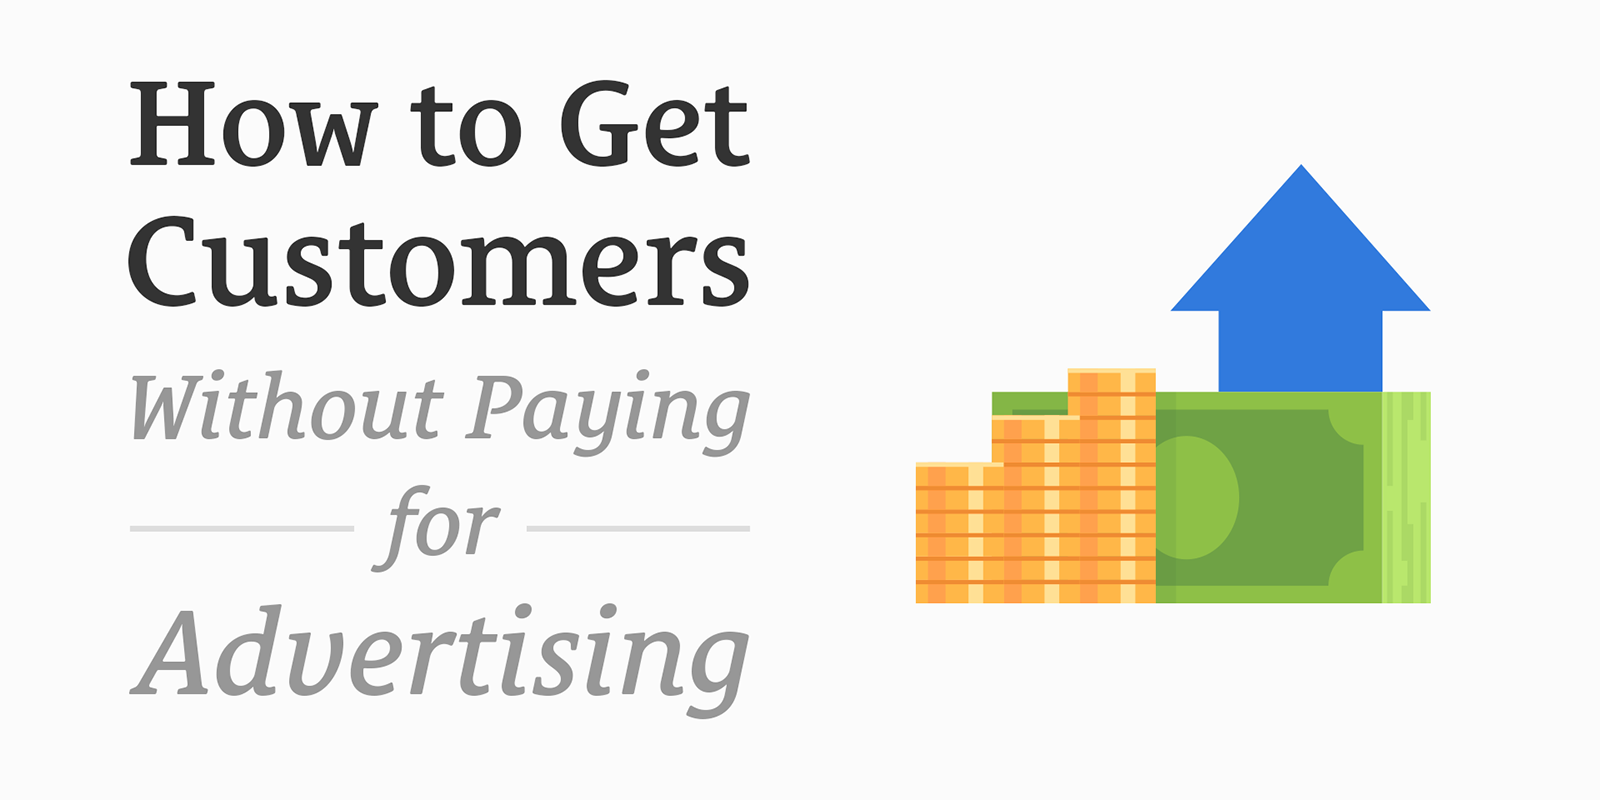 How to Get Customers Without Paying for Advertising